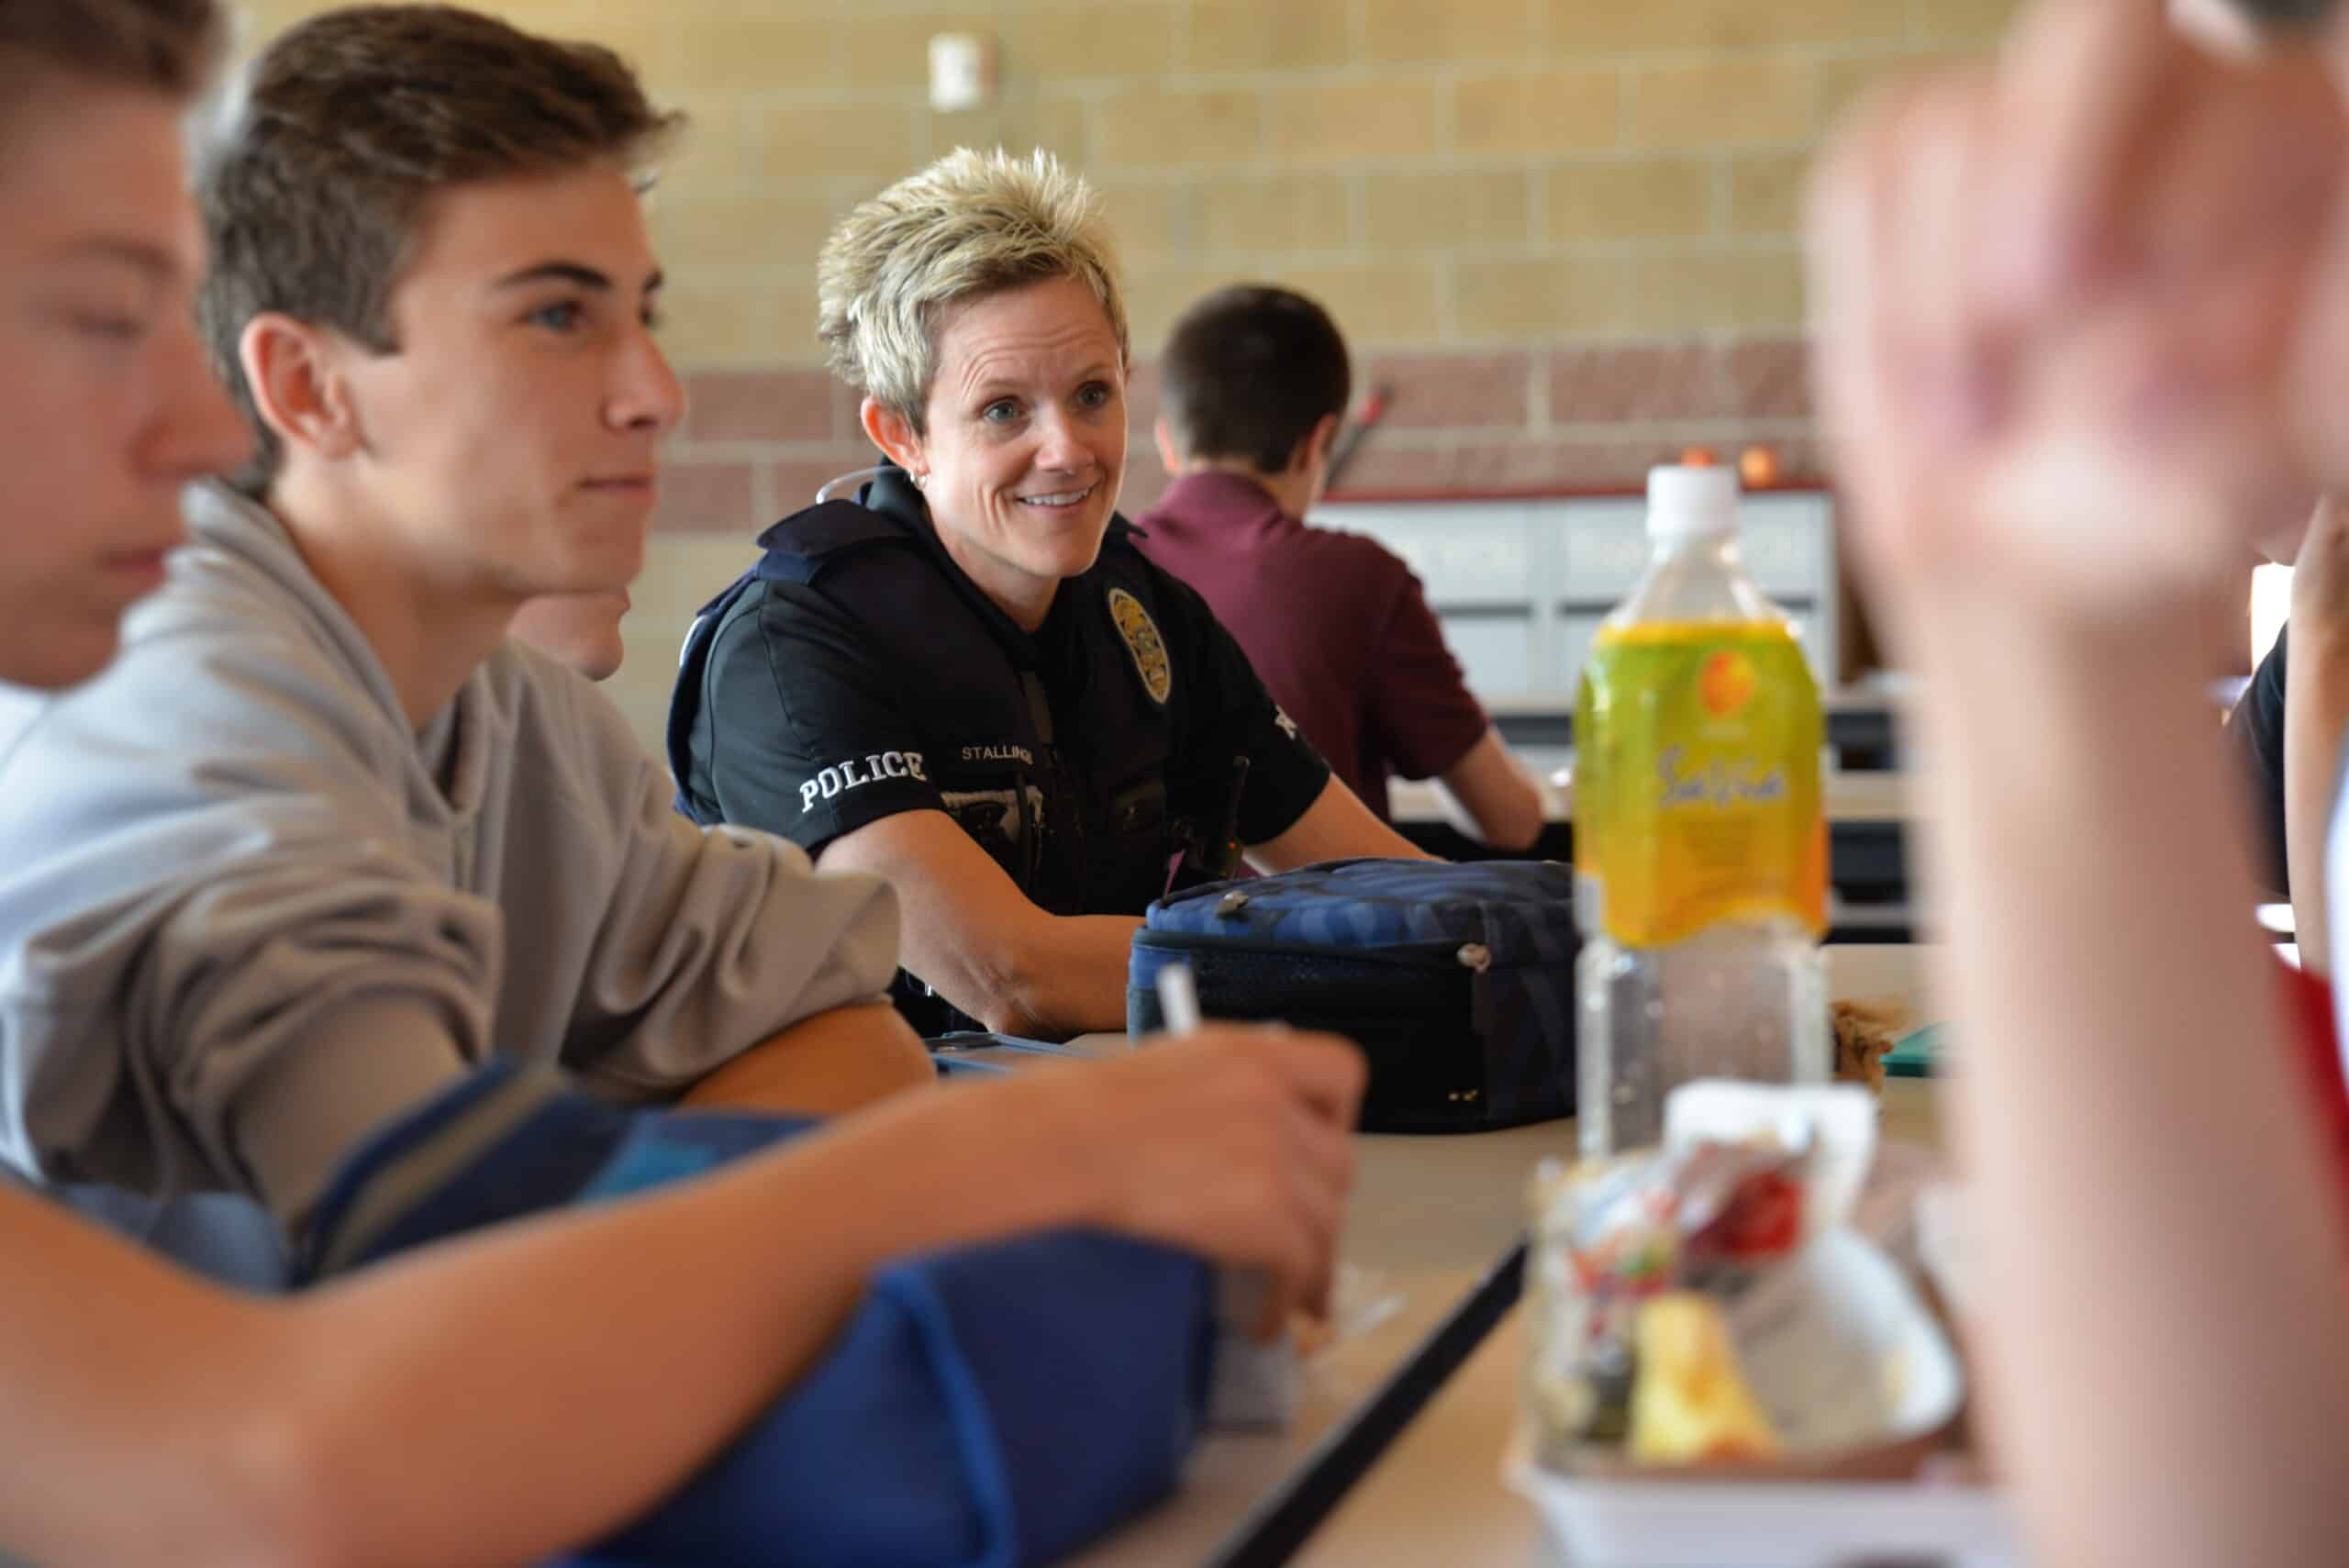 School Student Resource Officer having lunch with students